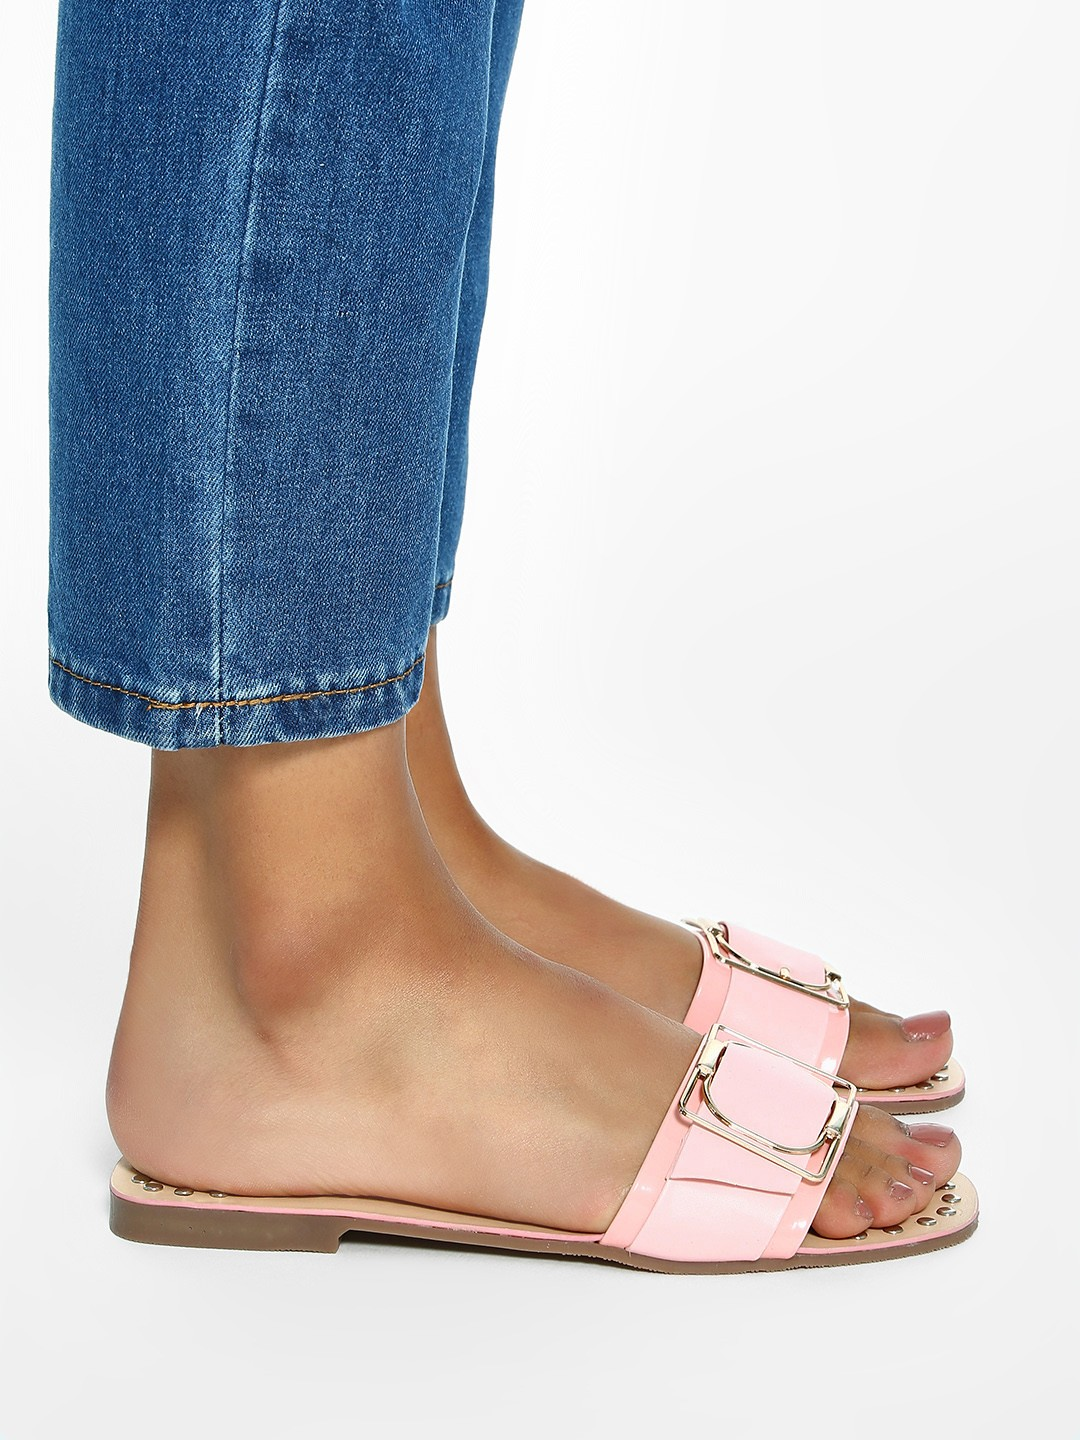 My Foot Couture Pink Buckle Strap Studded Flat Sandals 1